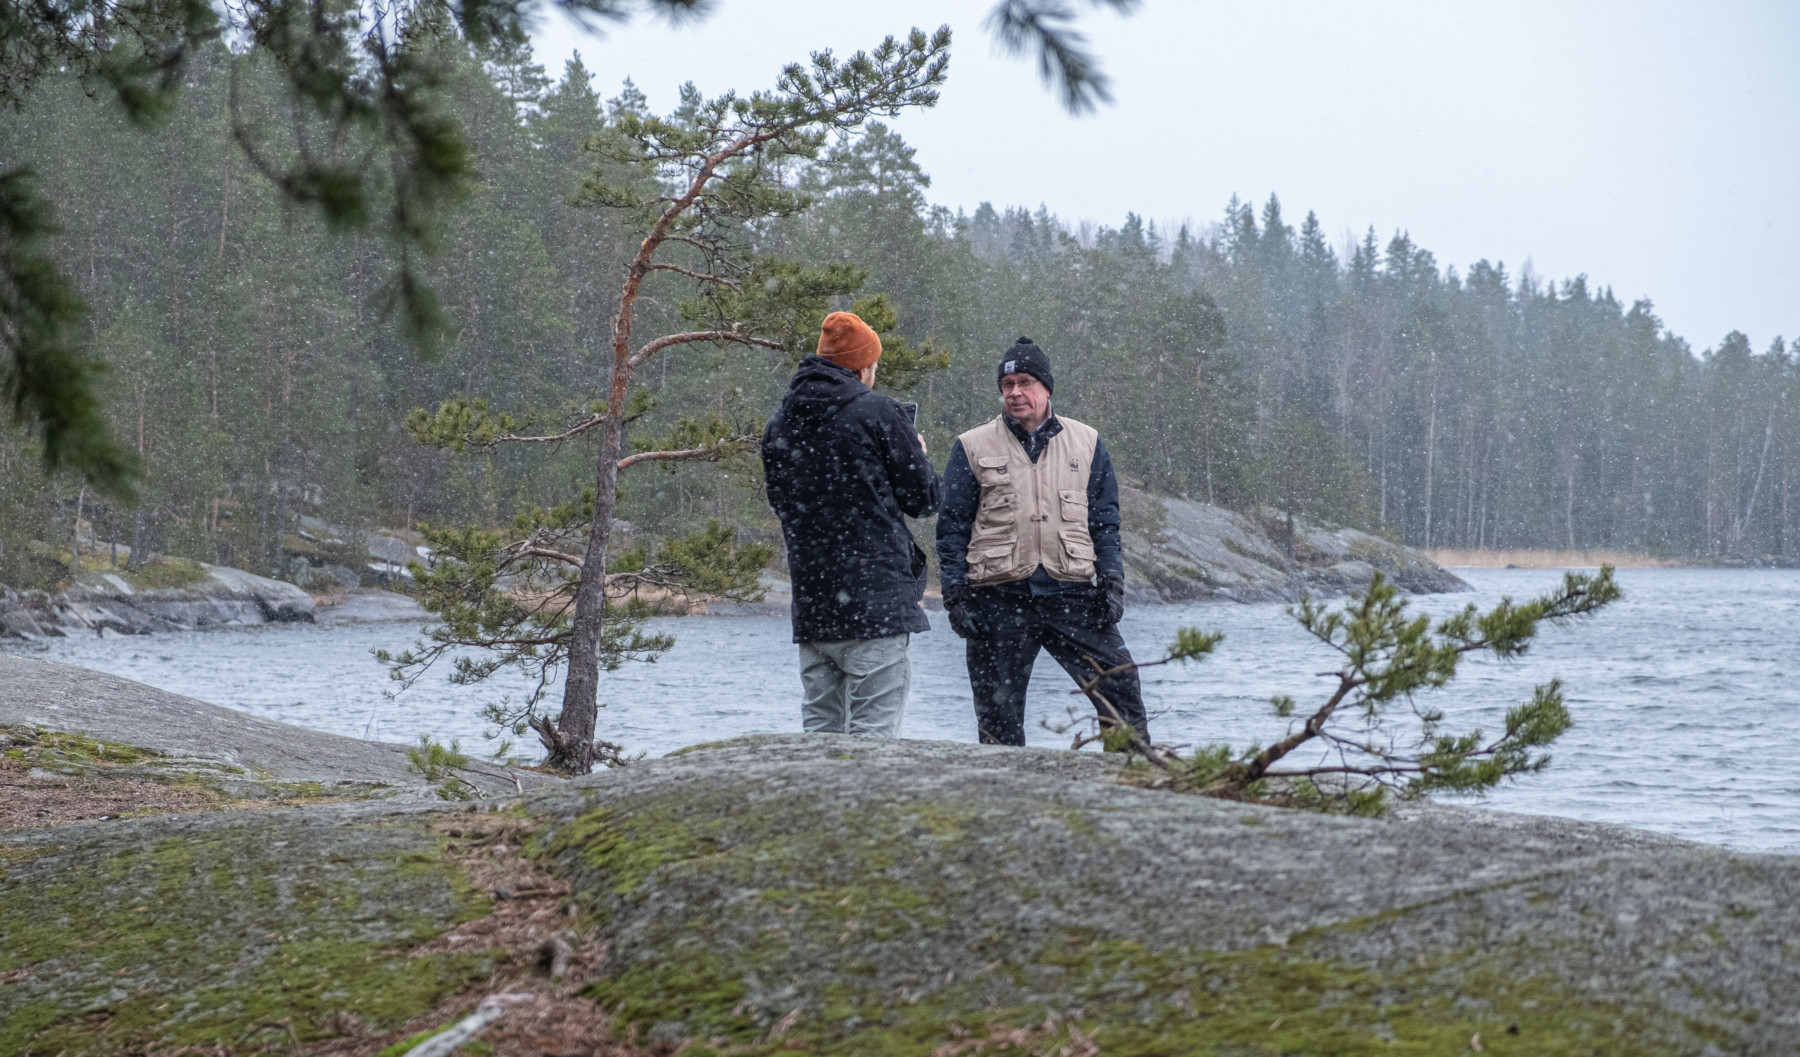 WWF Finland communications specialist Joonas Fritze and volunteer Ismo Marttinen standing in a green lakeshore landscape.